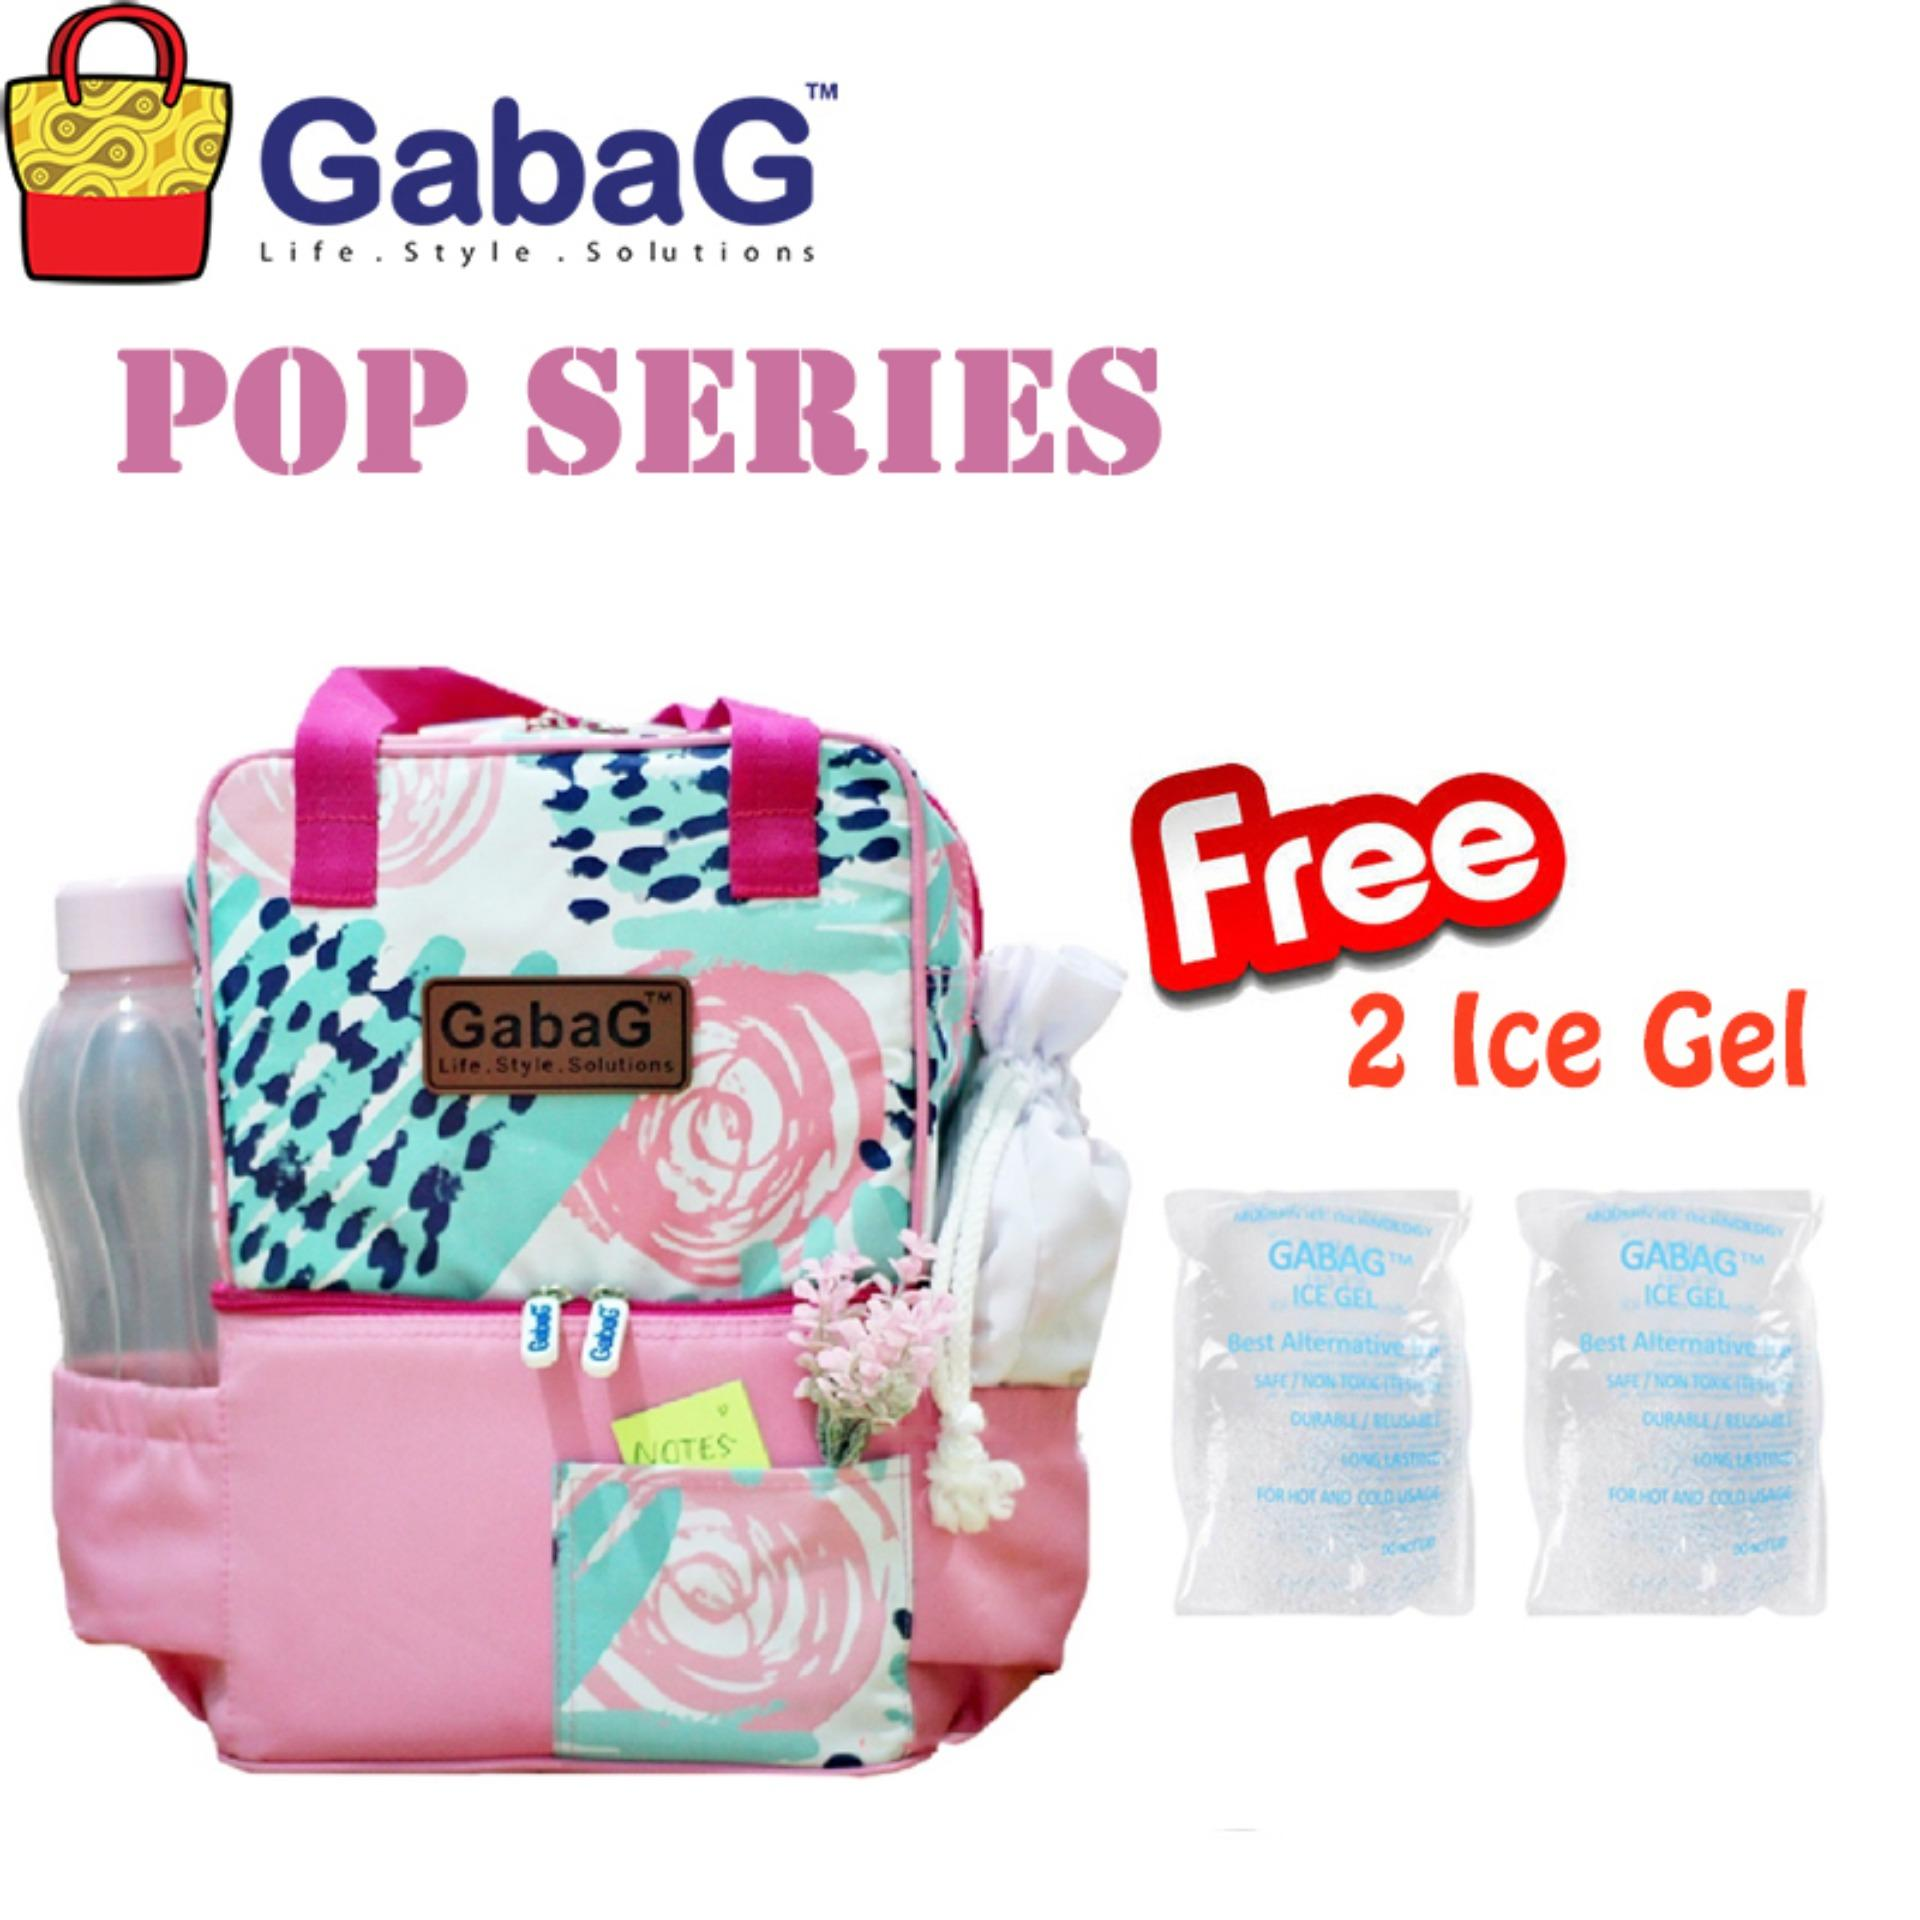 Harga Gabag Cooler Bag Pop Series Ceri Free 2 Ice Gel Terbaru